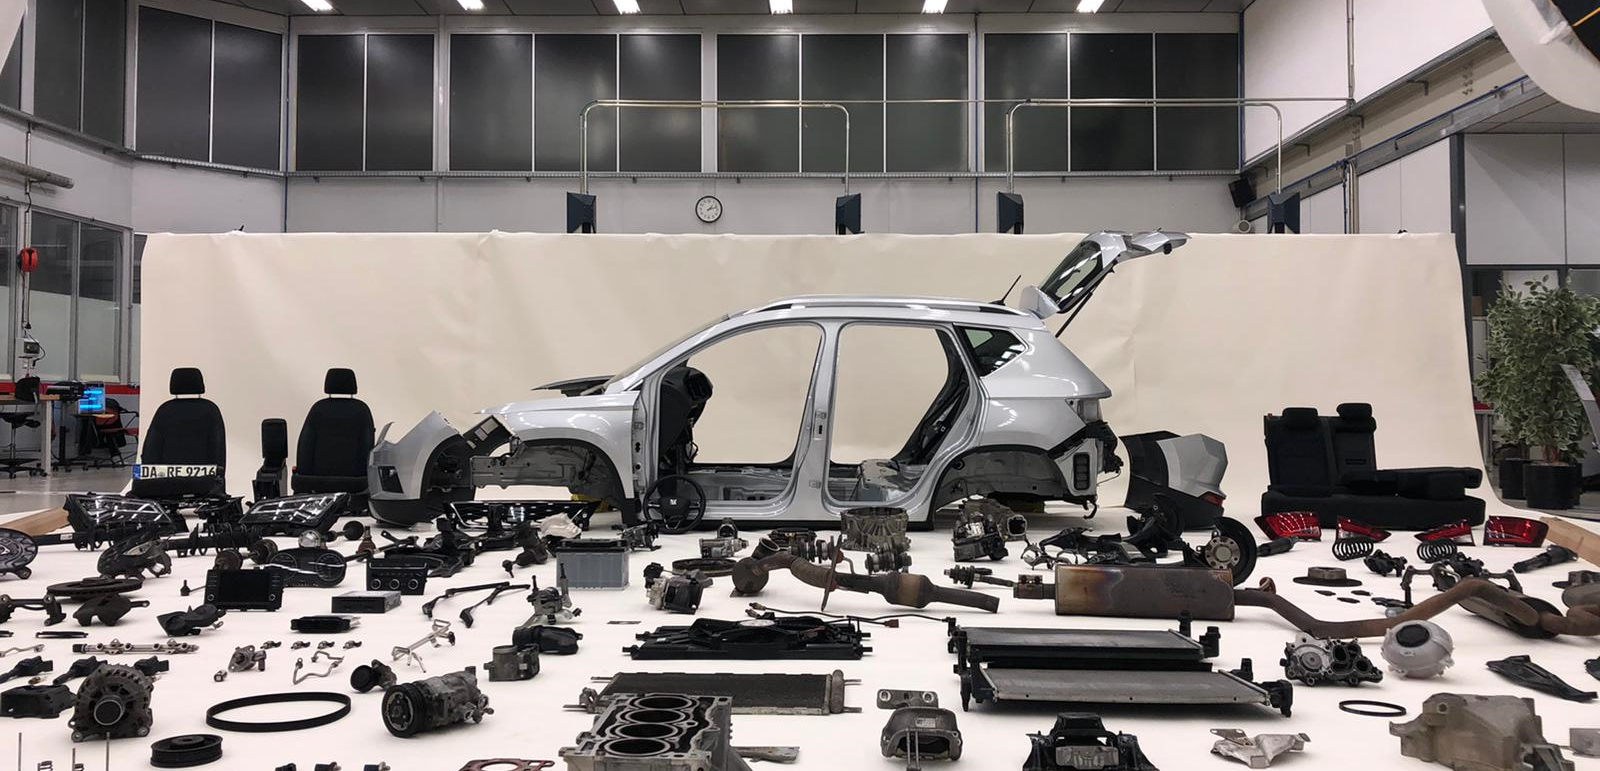 The Seat Ateca was disassembled after travelling 10,000km